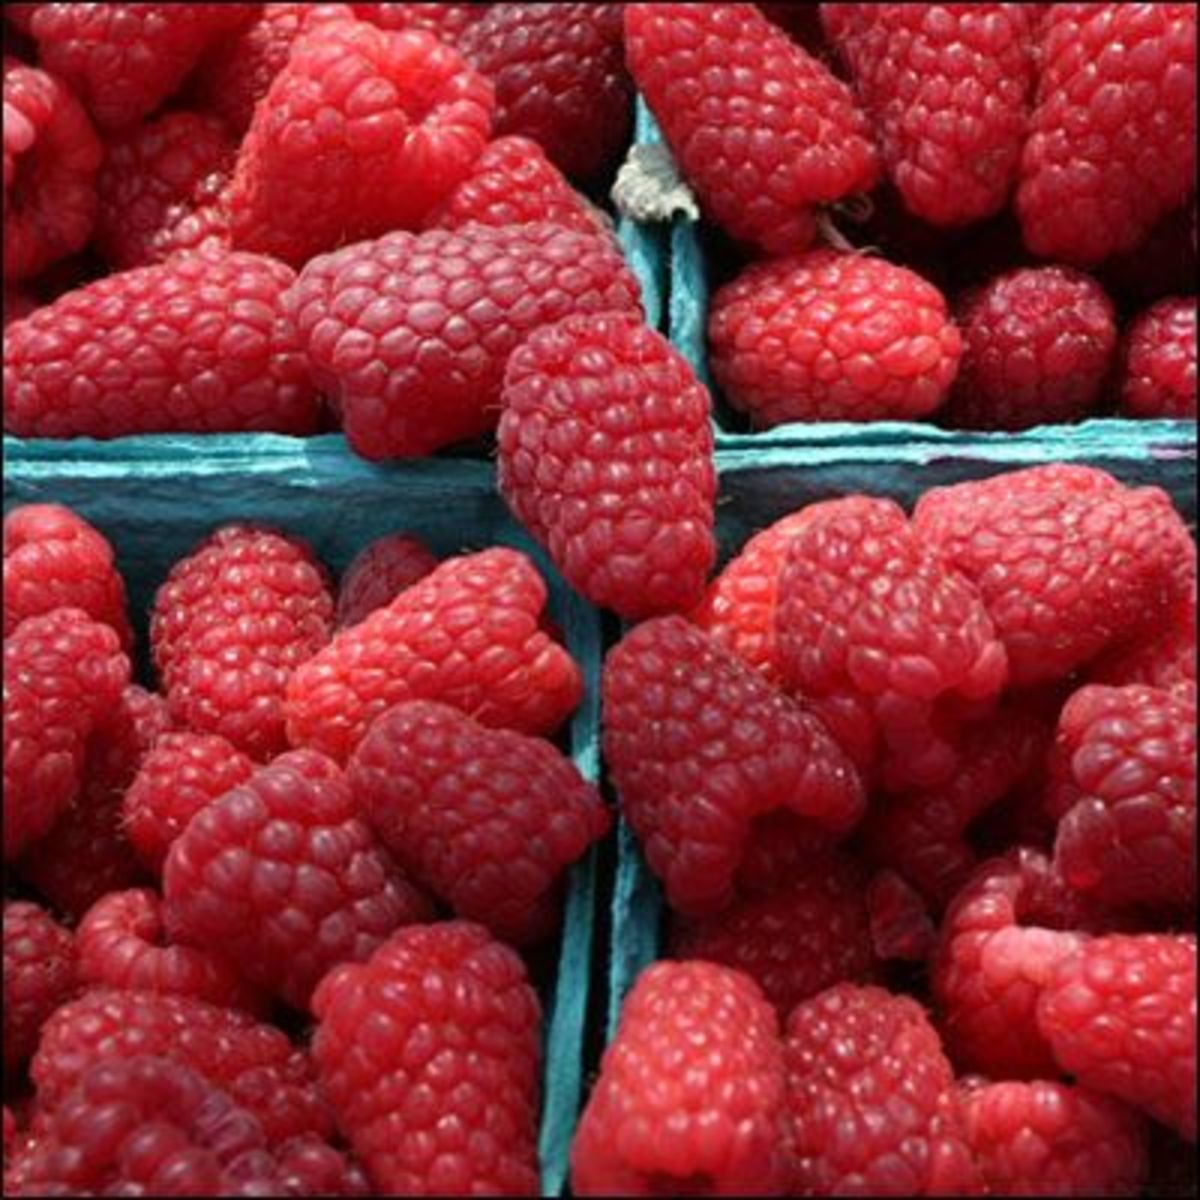 raspberries-ccflcr-lagrande